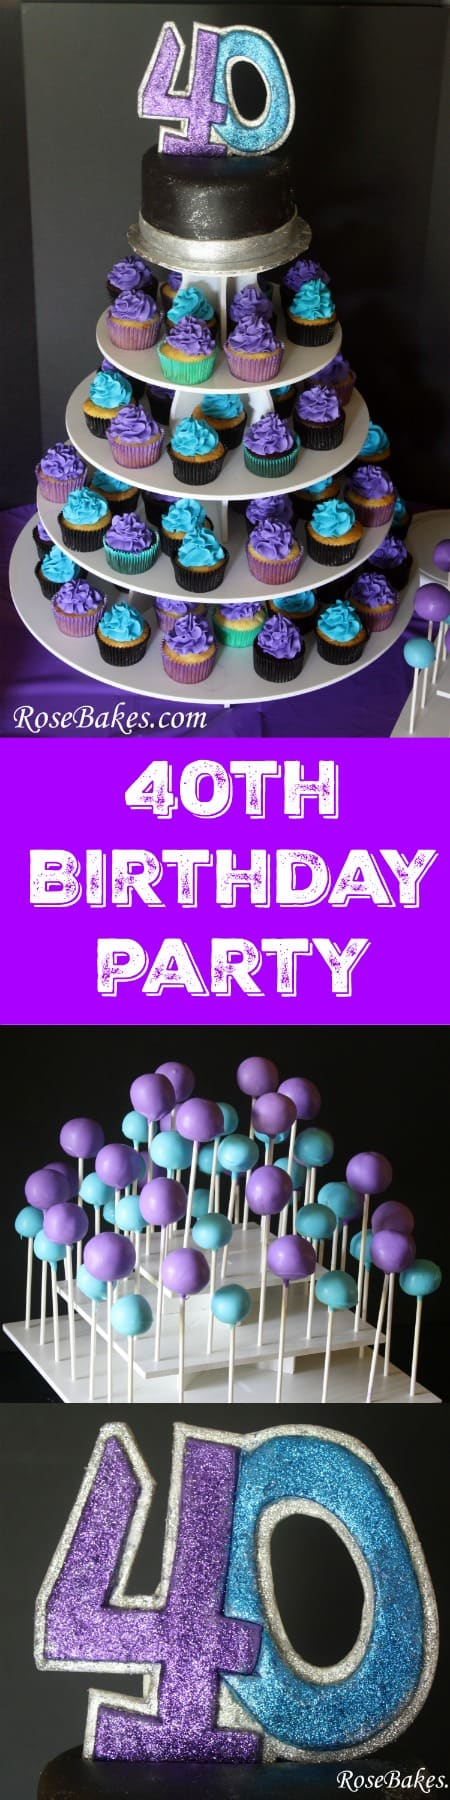 40th birthday cake cupcakes cake pops a party for my for 40 year old birthday decoration ideas